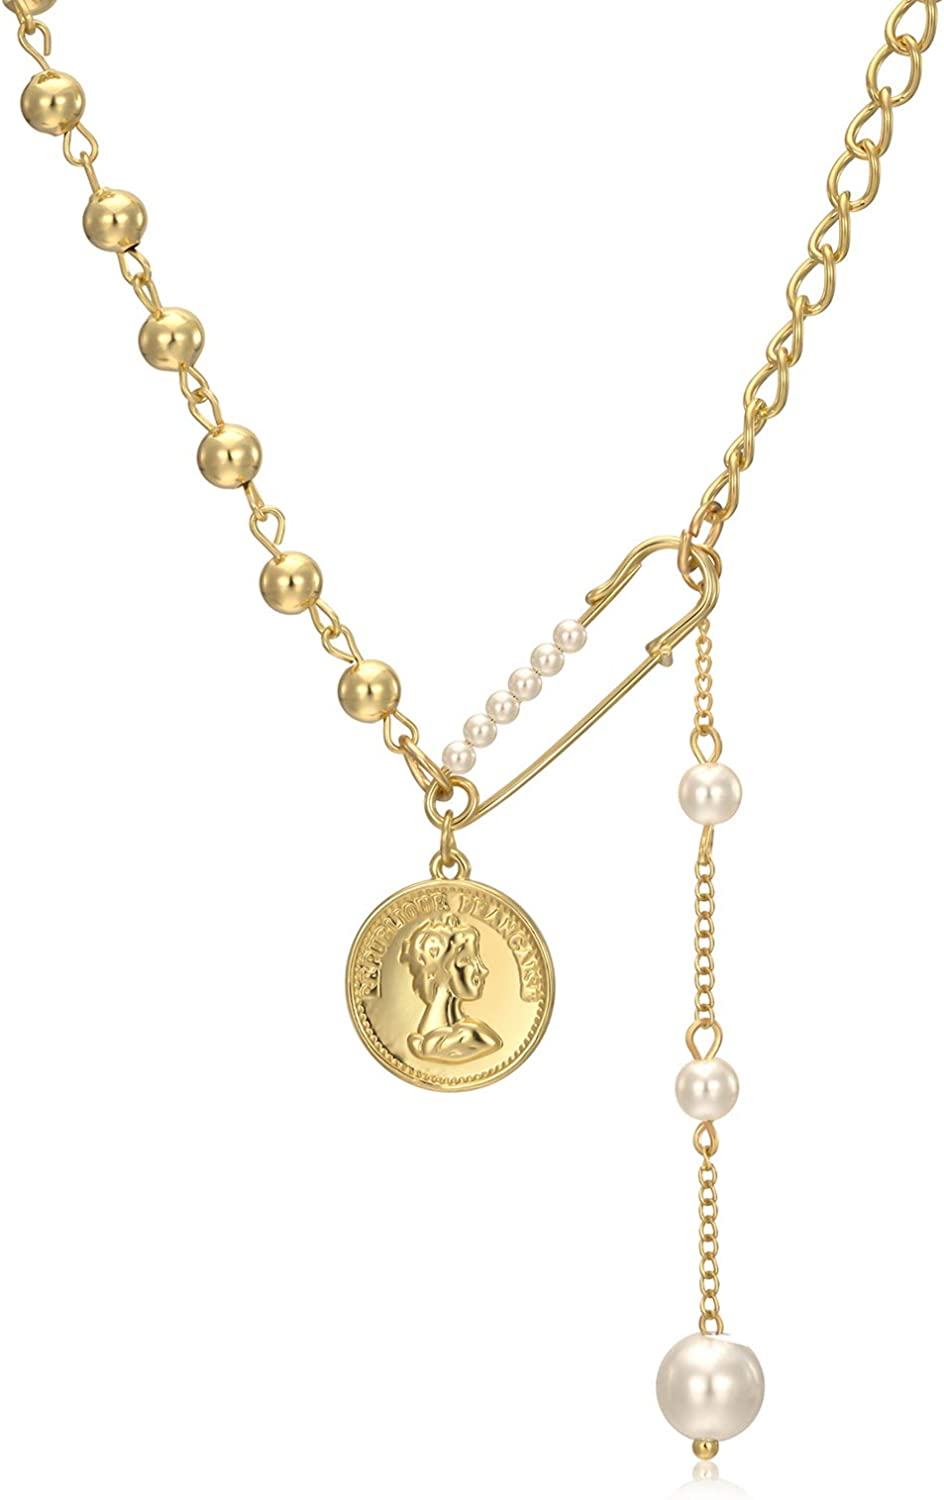 Y2K Necklace Coin Pendant Layered Necklace 18K Gold Plated Ball Splicing Chain Paper Clip Pearl Drop Fashion Y2k Choker Jewelry for Women Girl